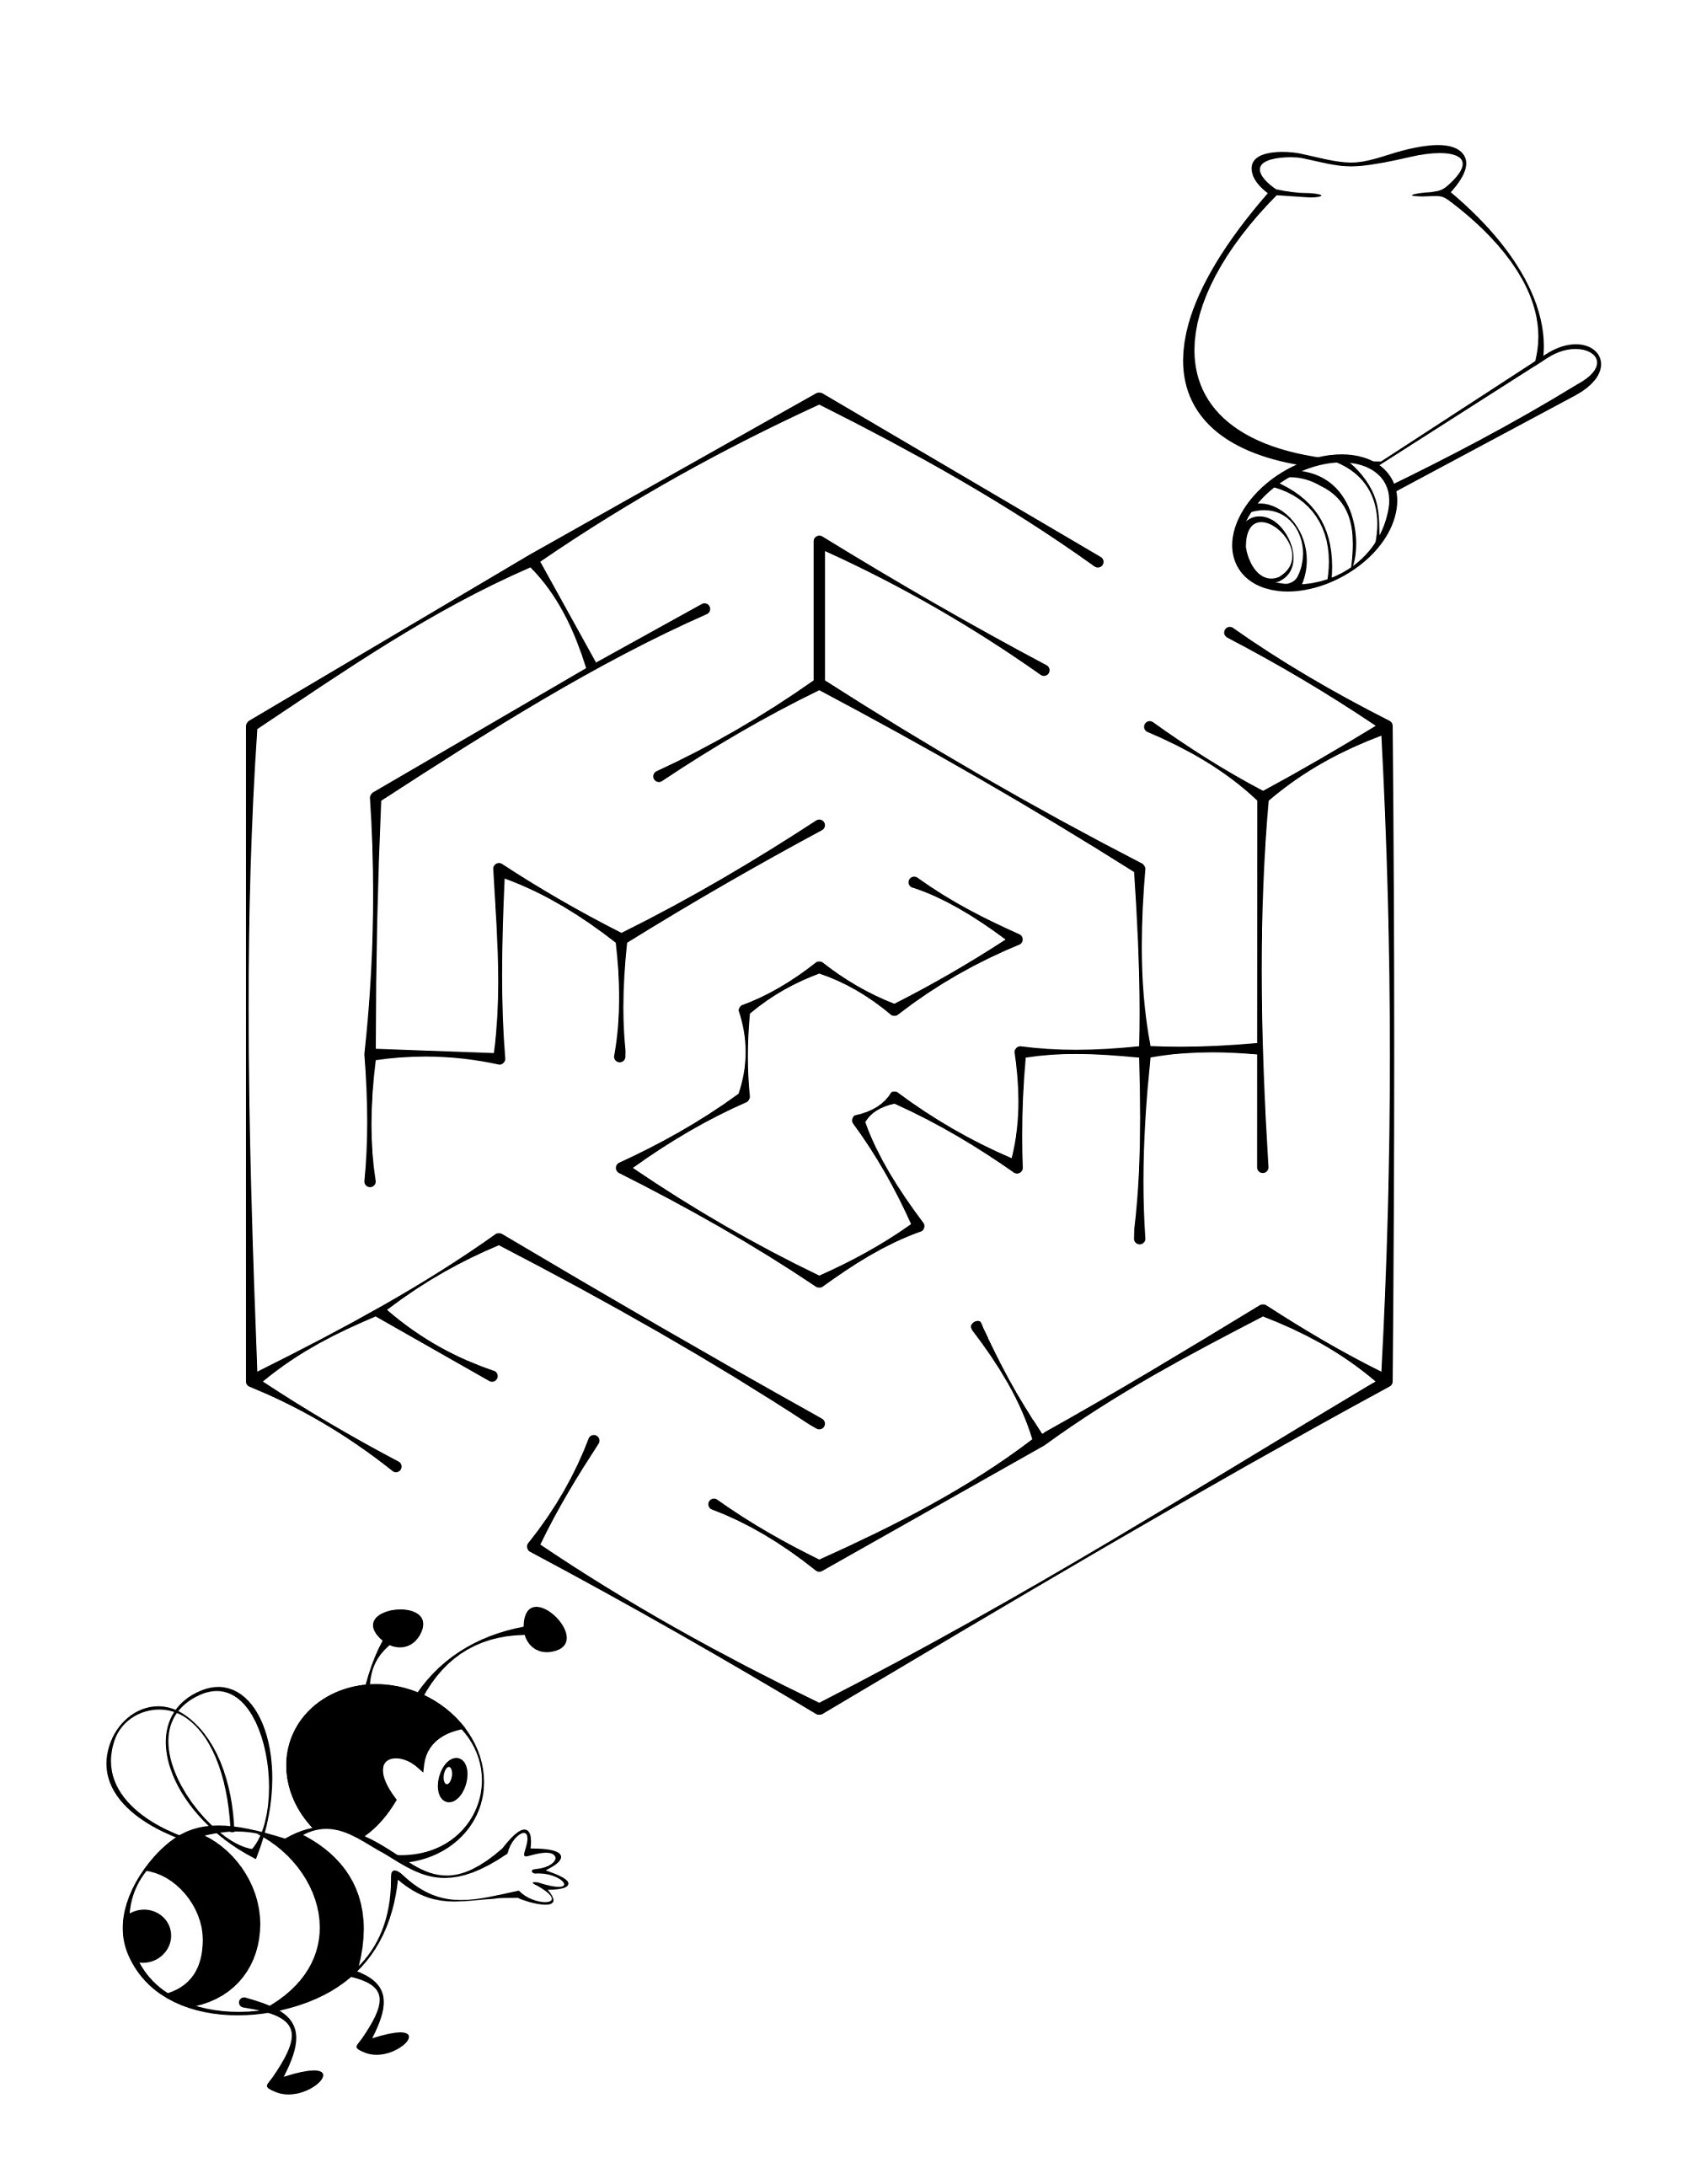 Printable Maze For Kids Free Learning Printable